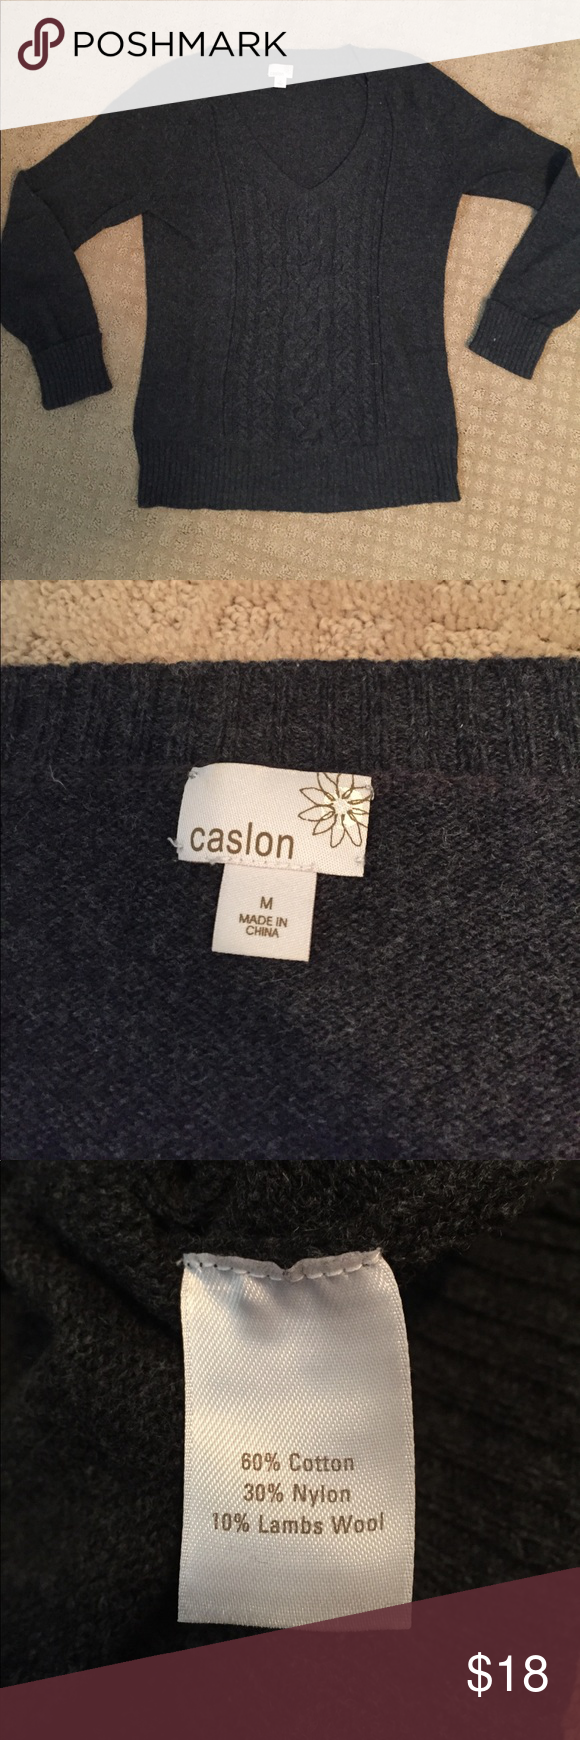 Caslon Gray Knit Sweater Caslon Gray Knit Sweater. Excellent condition! Soft and comfortable and stylish! 60% cotton, 30% nylon, 10% lambs wool. Caslon Sweaters V-Necks